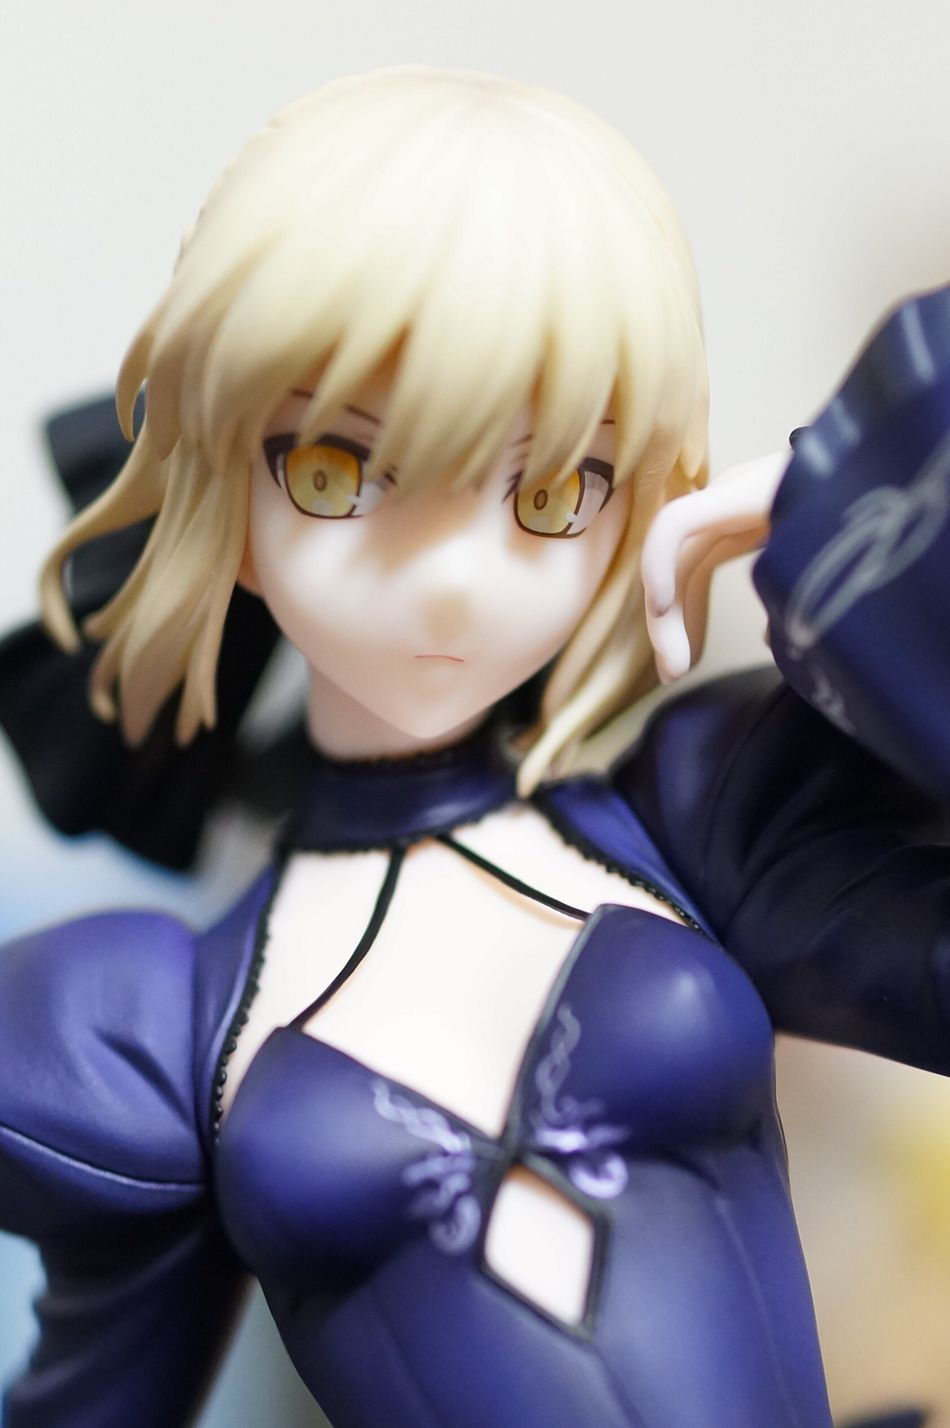 Saber FateStayNight Fate/stay Night Toys Toy Toyphotography Saber Alter Figure Figurephotography